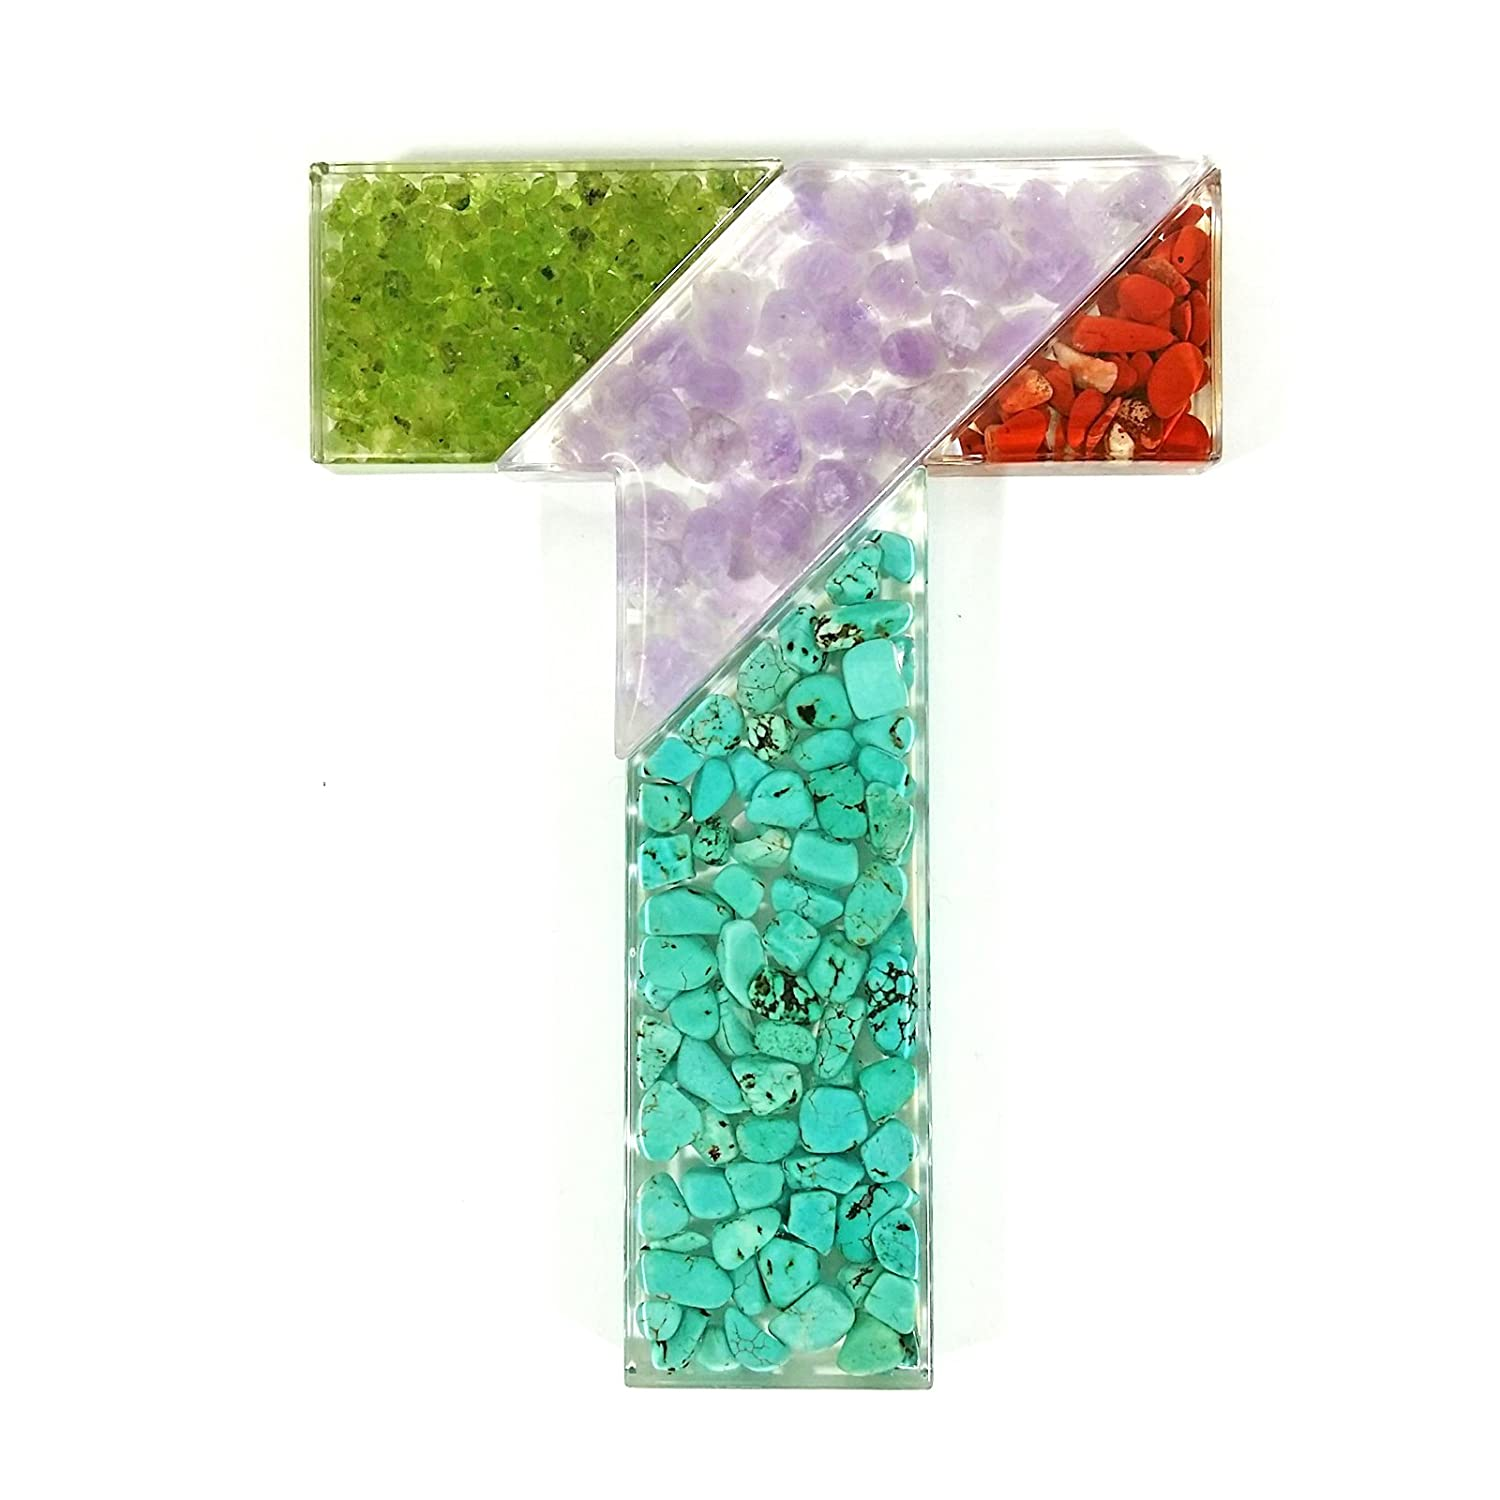 Real Cool Bug Company PUZ1413 REALBUG Mineral Tangram Puzzle 4 Piece